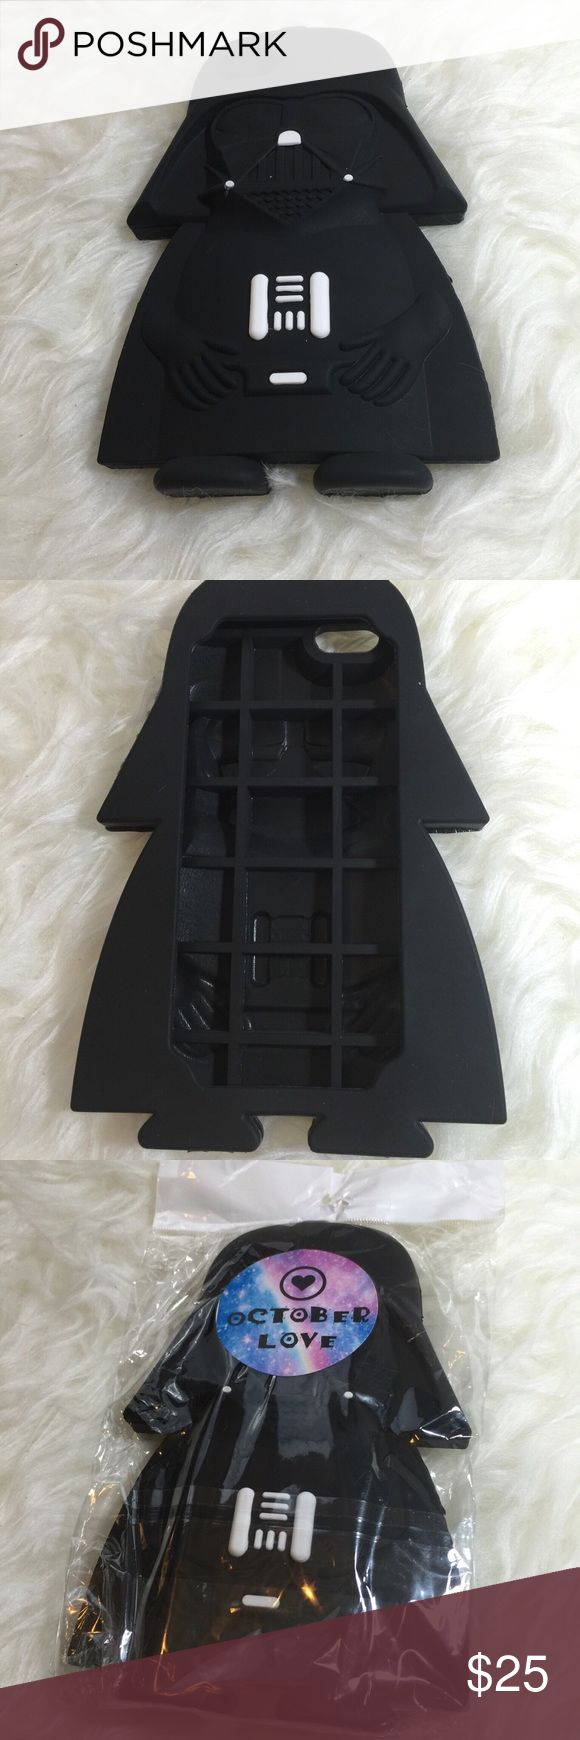 Star Wars iPhone 6/6s Case Star Wars iPhone 6/6s case. Provides protection to the back and sides of phone. High flexibility. TPU material. October Love Accessories Phone Cases